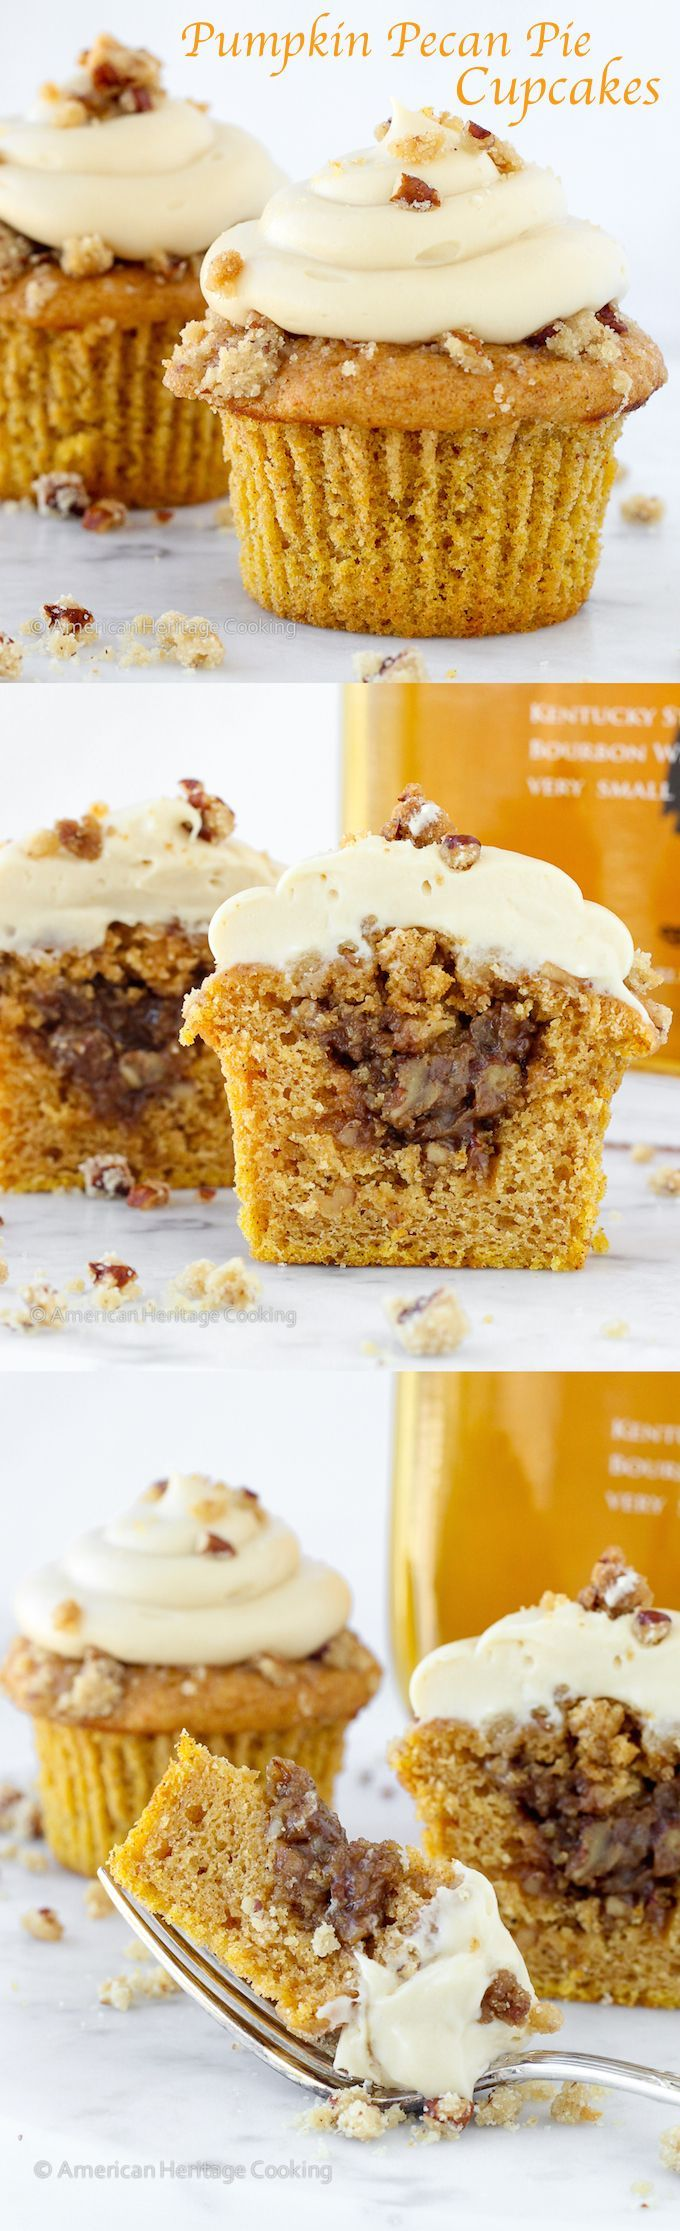 Pumpkin Pecan Pie Cupcakes with a Bourbon Brown Sugar Frosting | Spiced pumpkin…